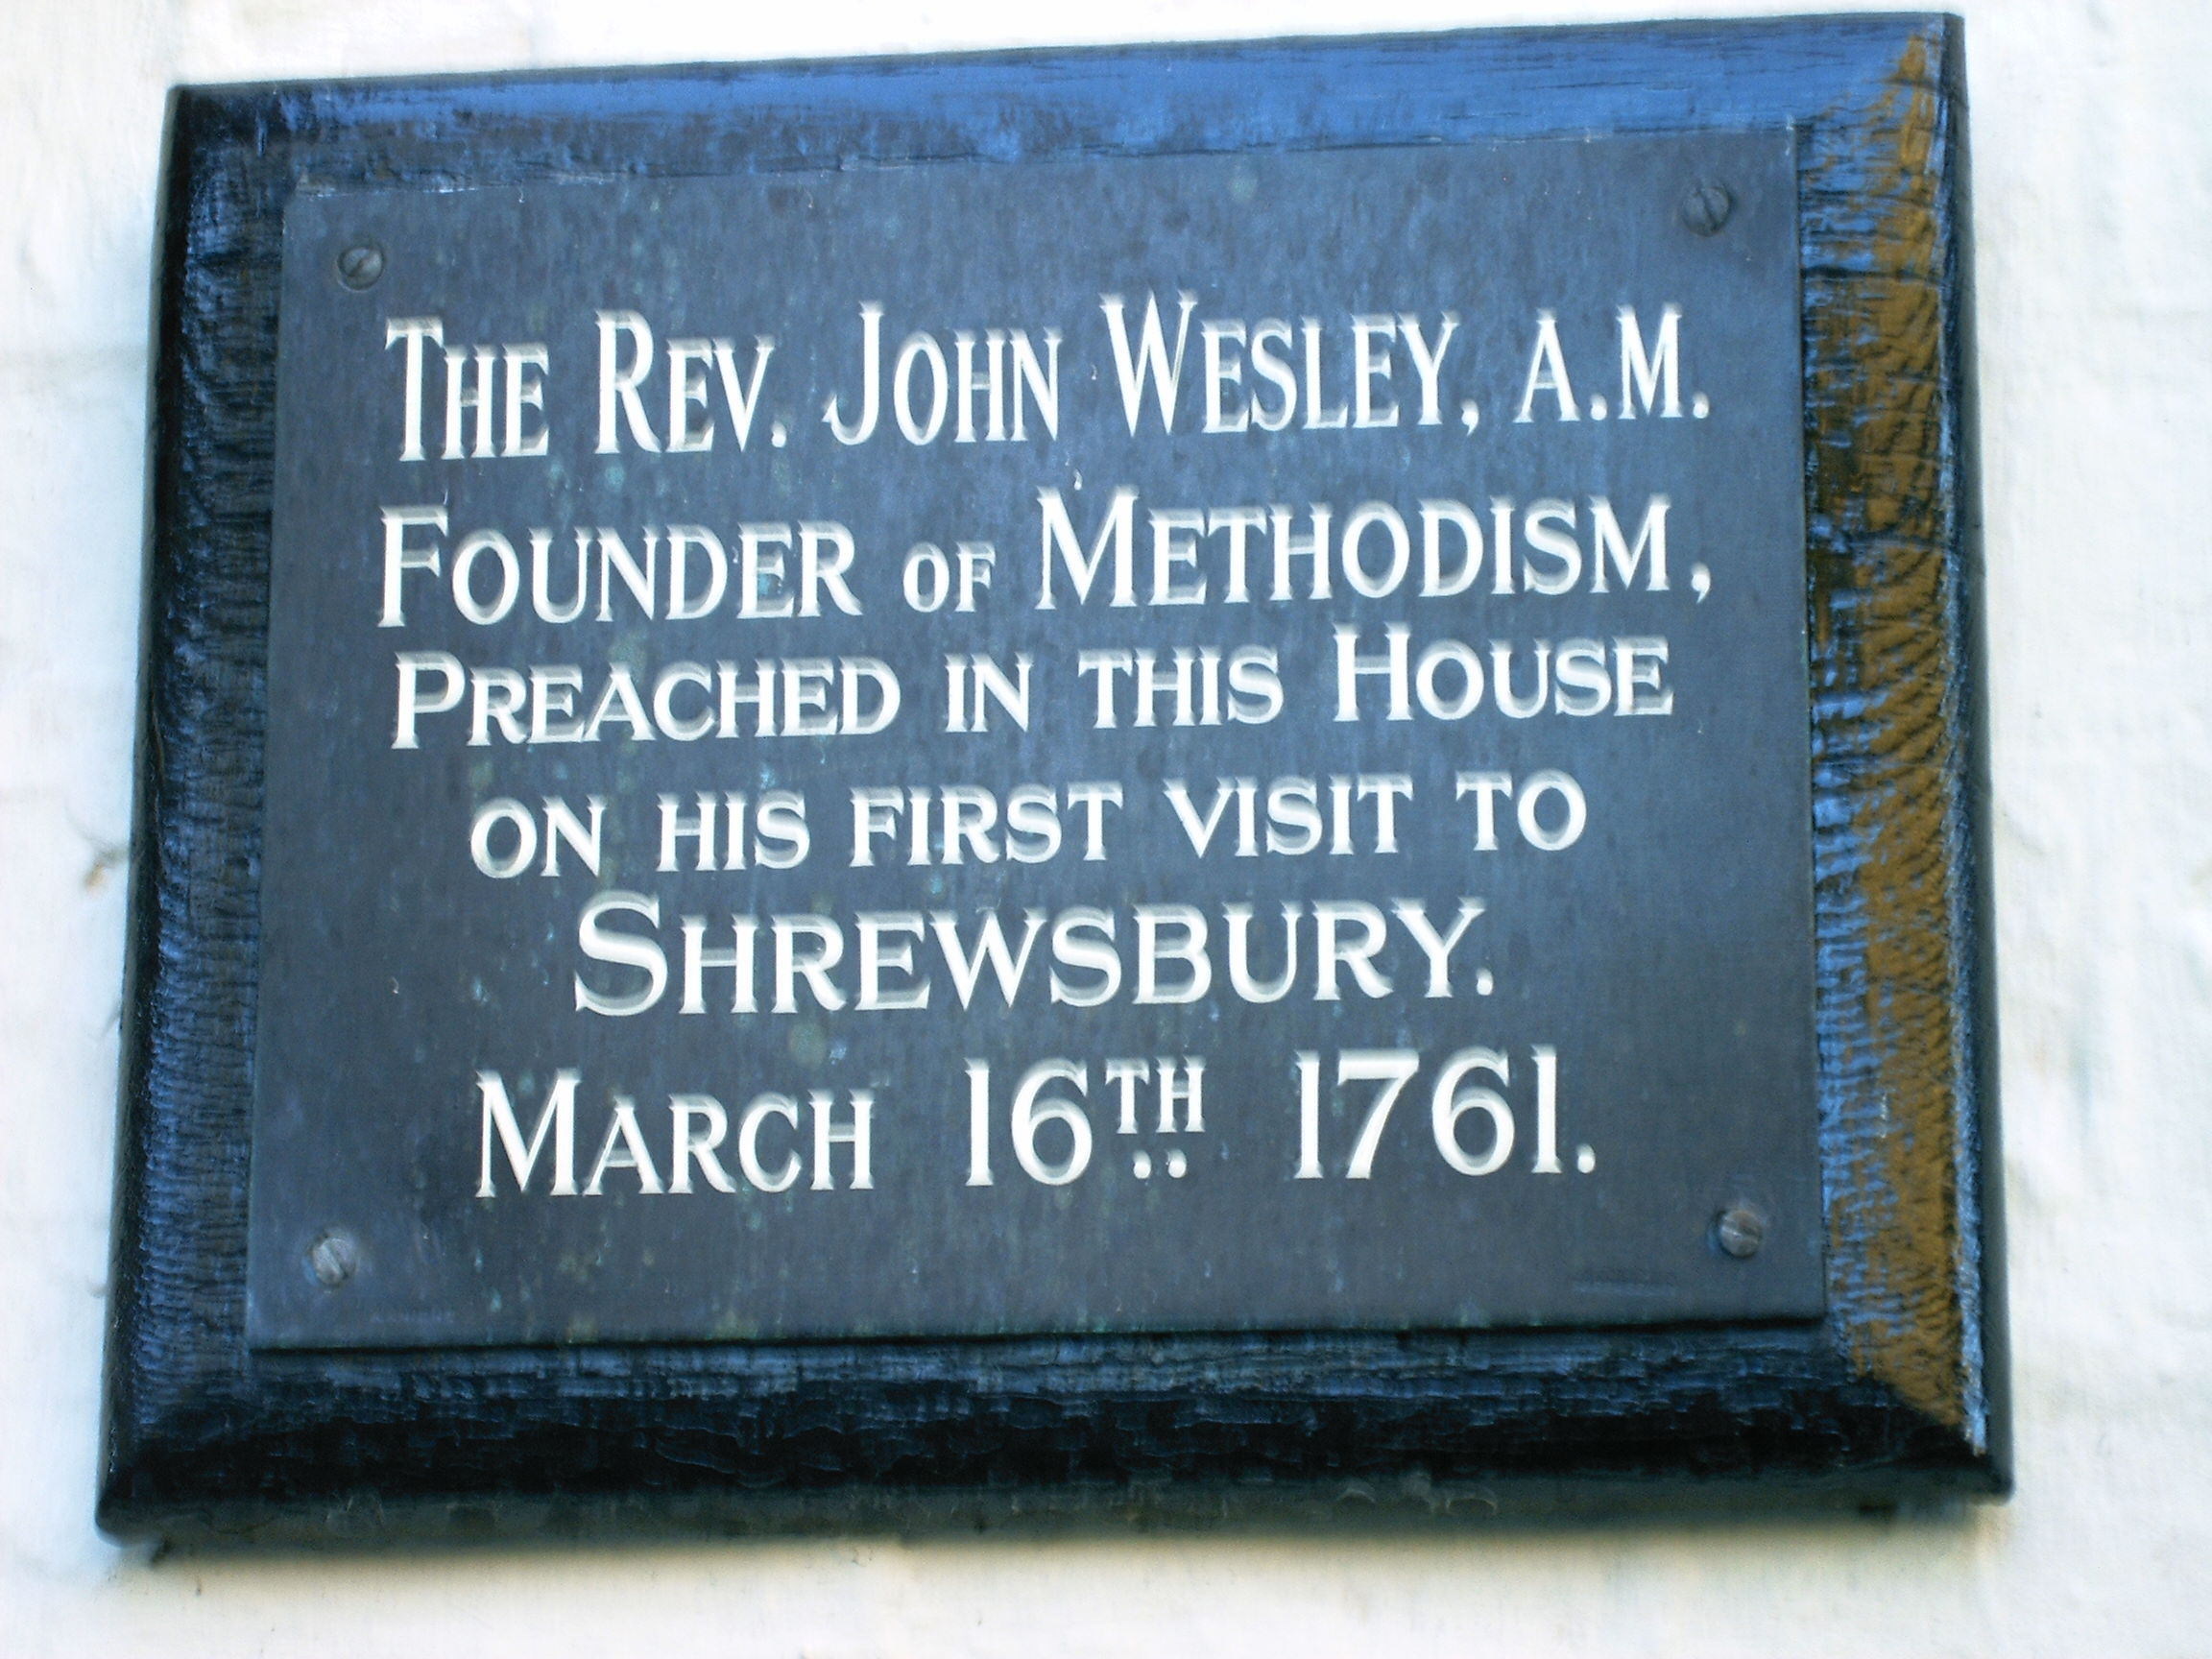 Shrewsbury methodism 01